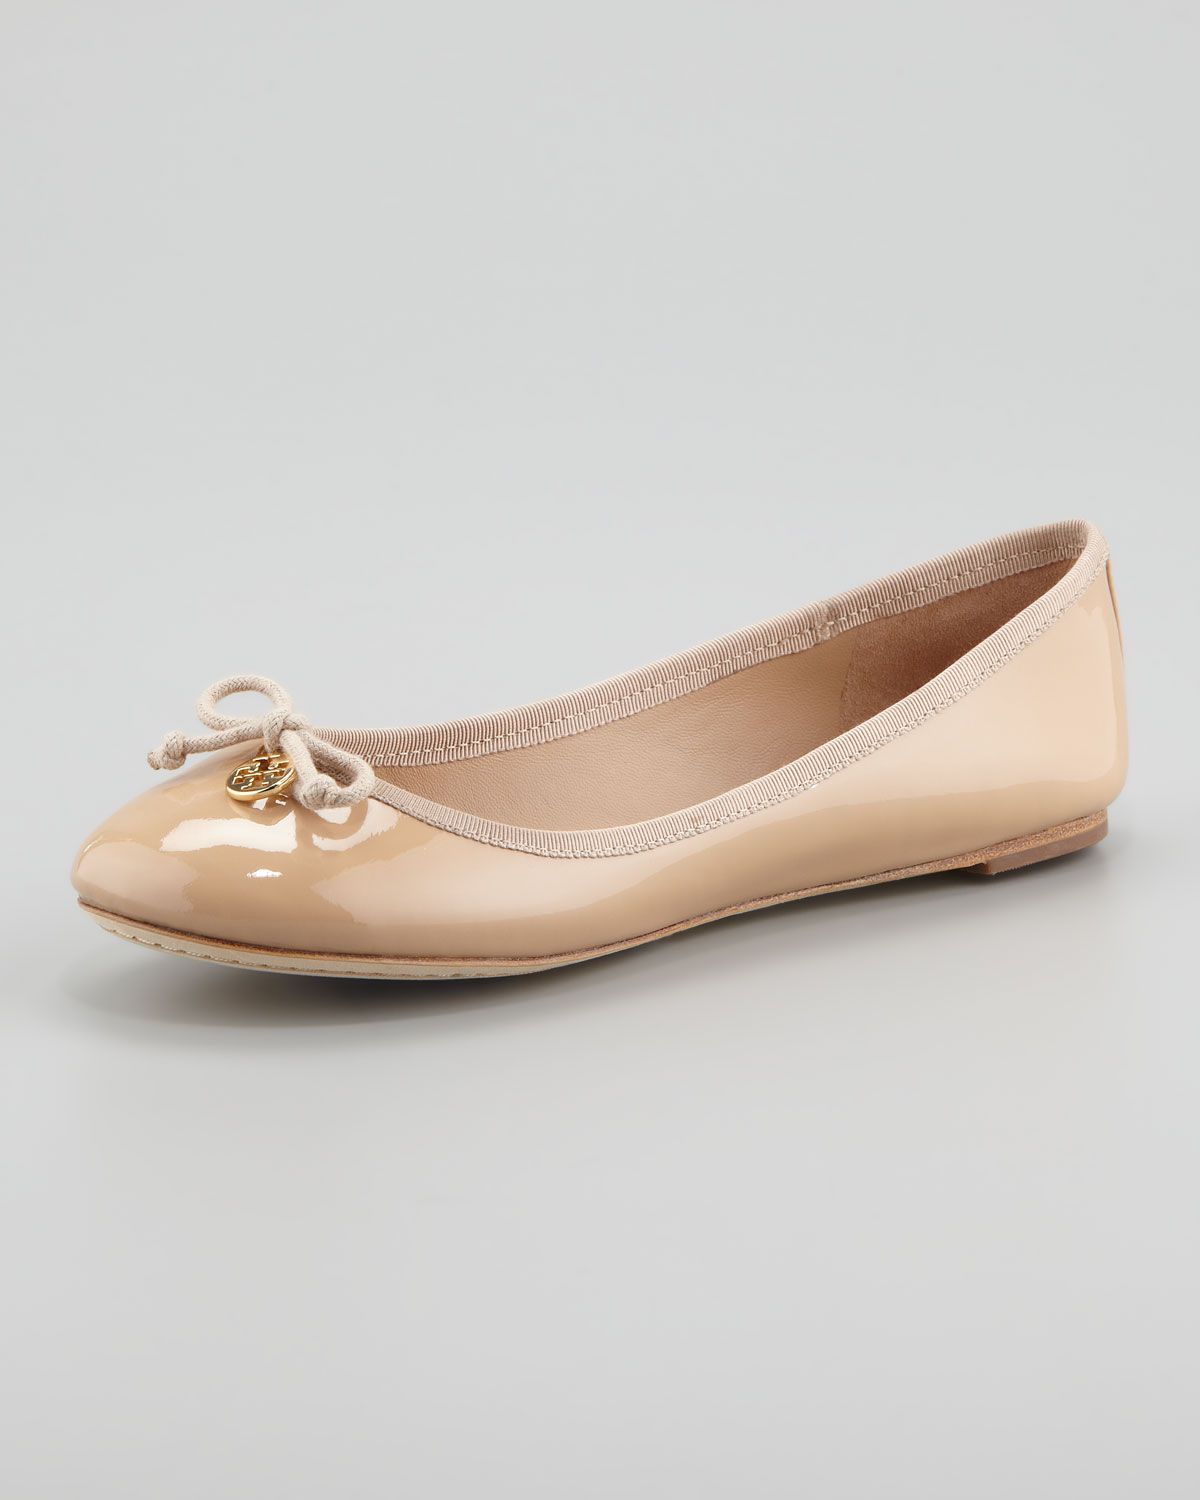 Tory Burch 10MM CHELSEA LEATHER & PATENT FLATS Free Shipping With Mastercard Buy Cheap Amazon Cheap Get To Buy nleqJe